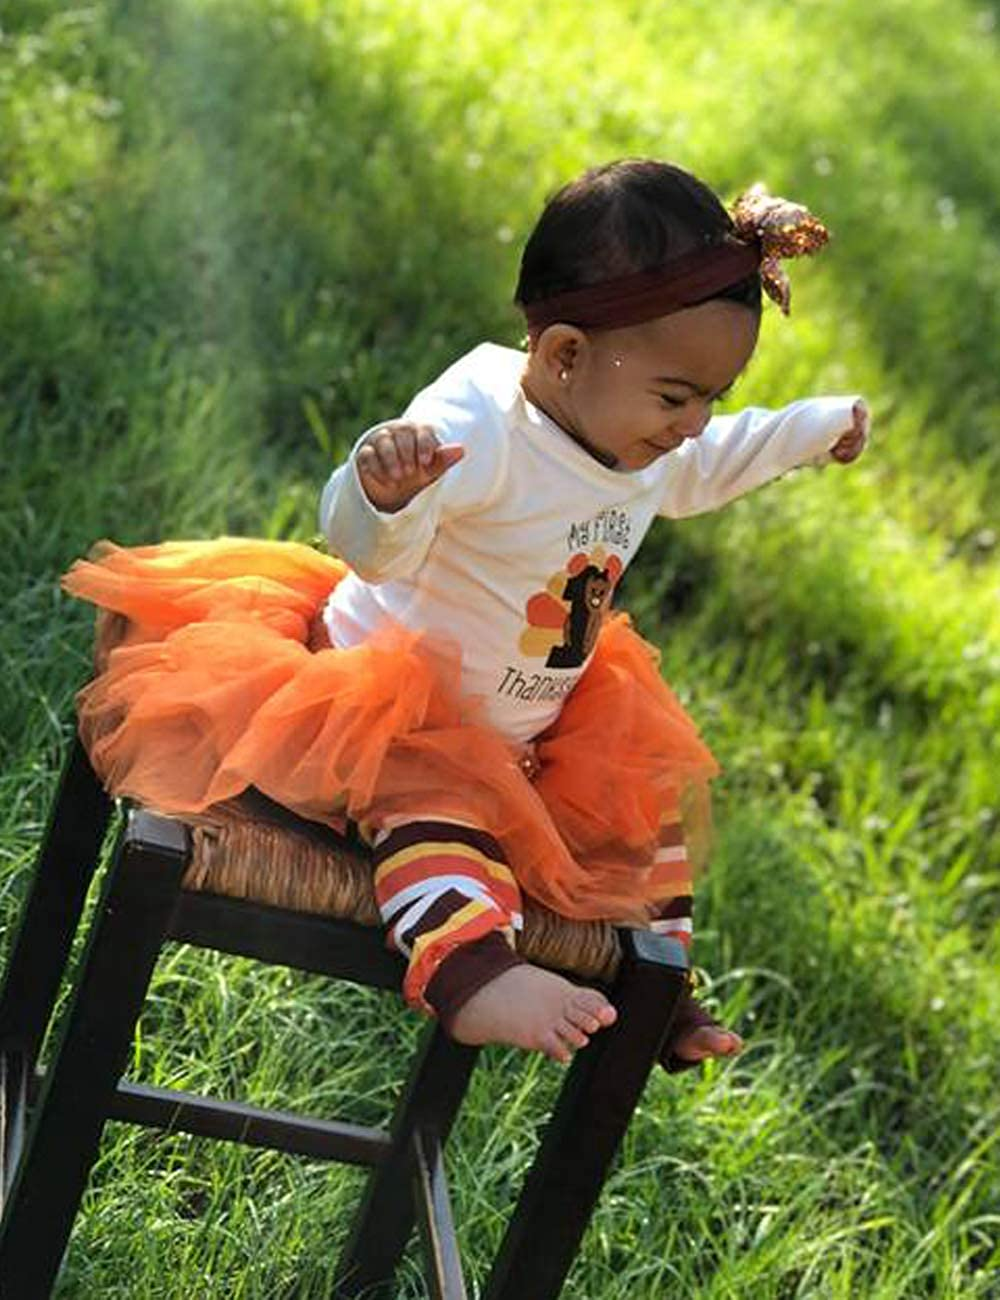 OKGIRL Baby Girl My First Thanksgiving Outfits Sets Letter Romper Orange Short Skirt Bodysuit with Headband Clothes Set